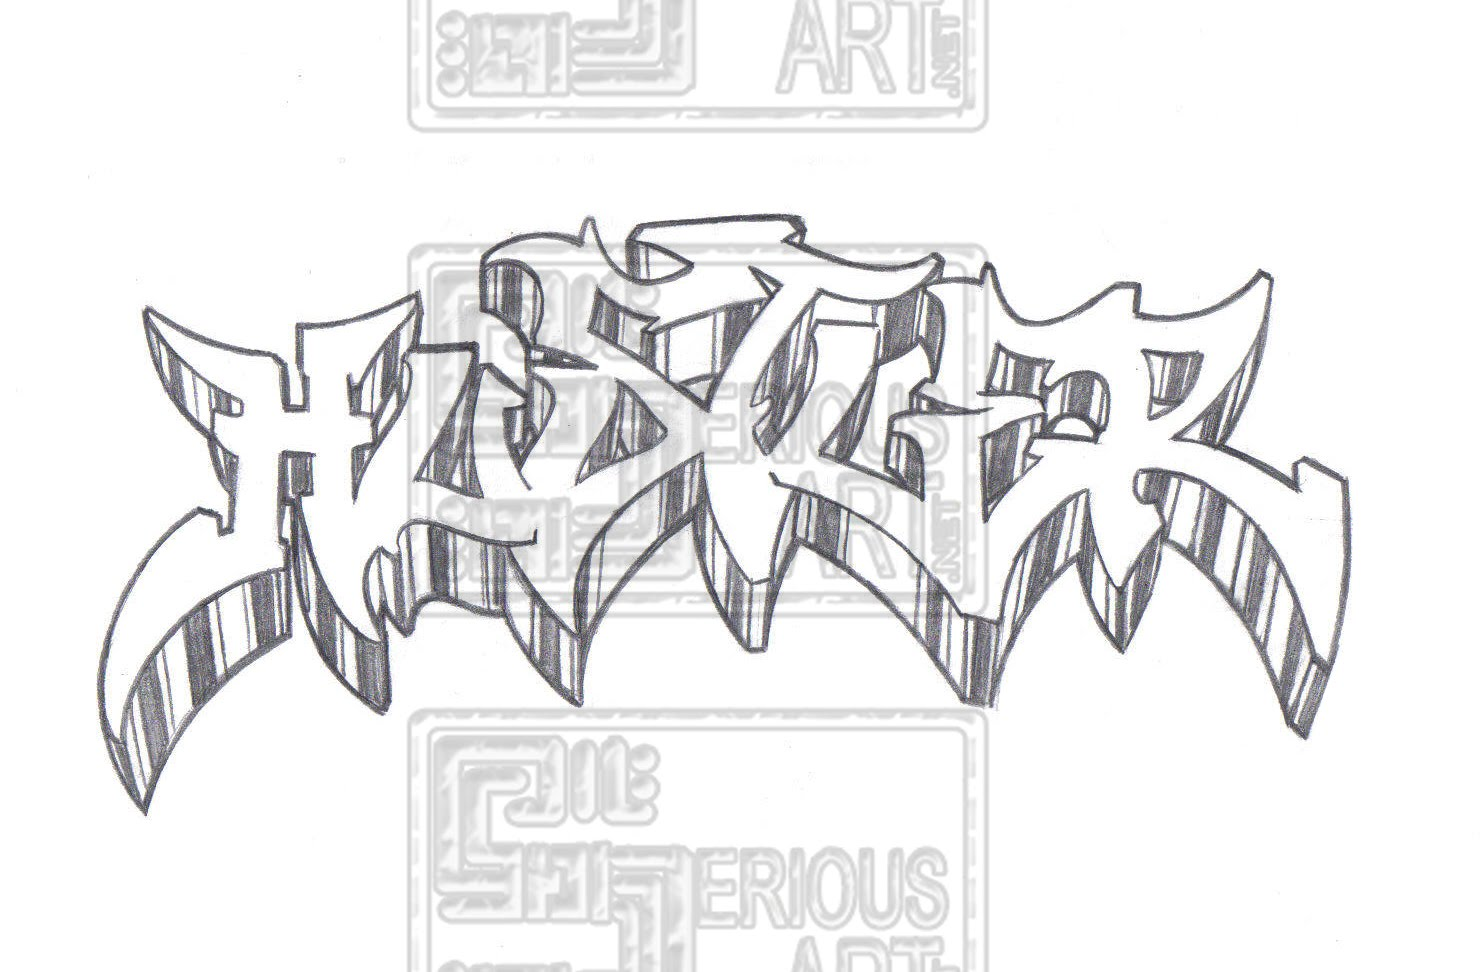 1000+ images about Graffiti on Pinterest